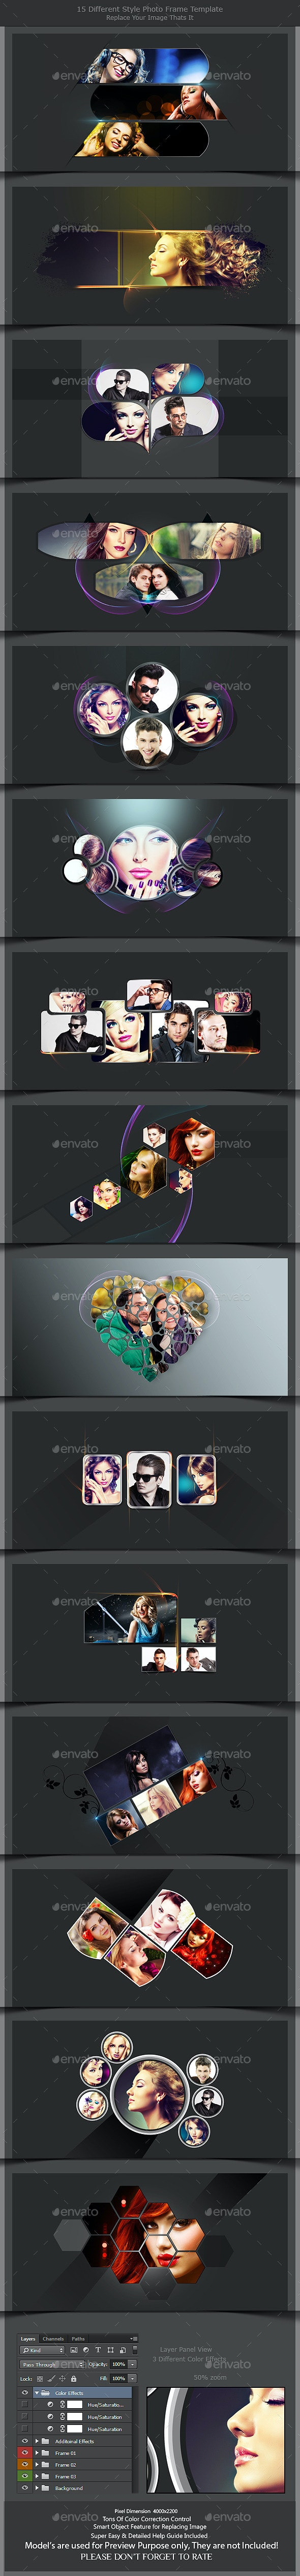 15 Different Styles Photo Frame Template - Photo Templates Graphics